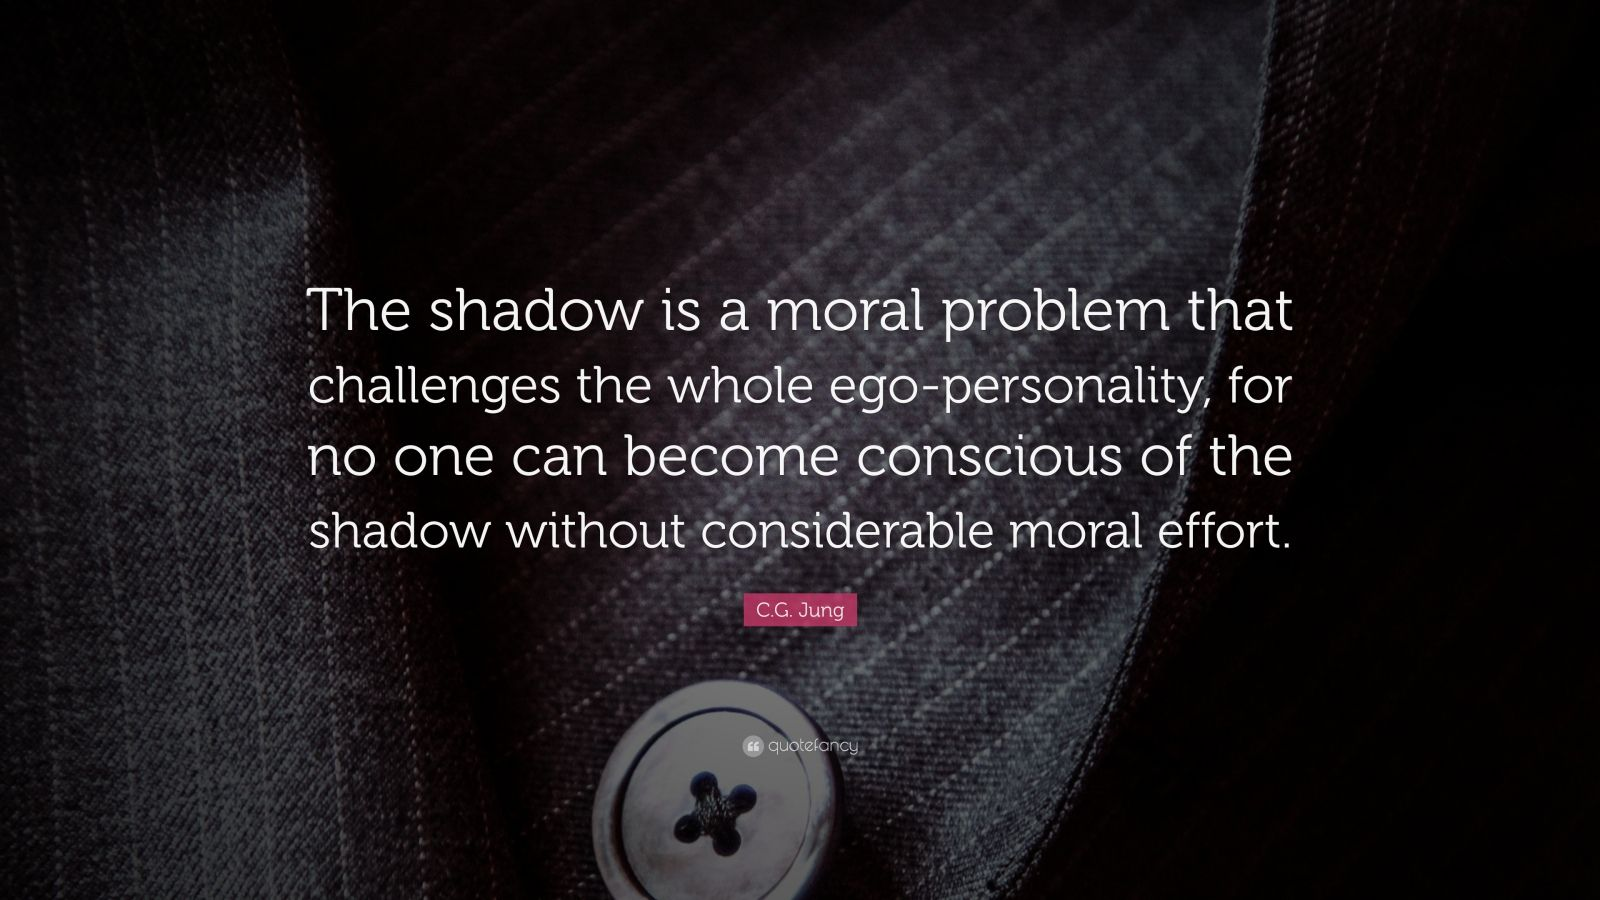 """C.G. Jung Quote: """"The shadow is a moral problem that challenges the whole ego-personality, for no one can become conscious of the shadow without considerable moral effort."""""""